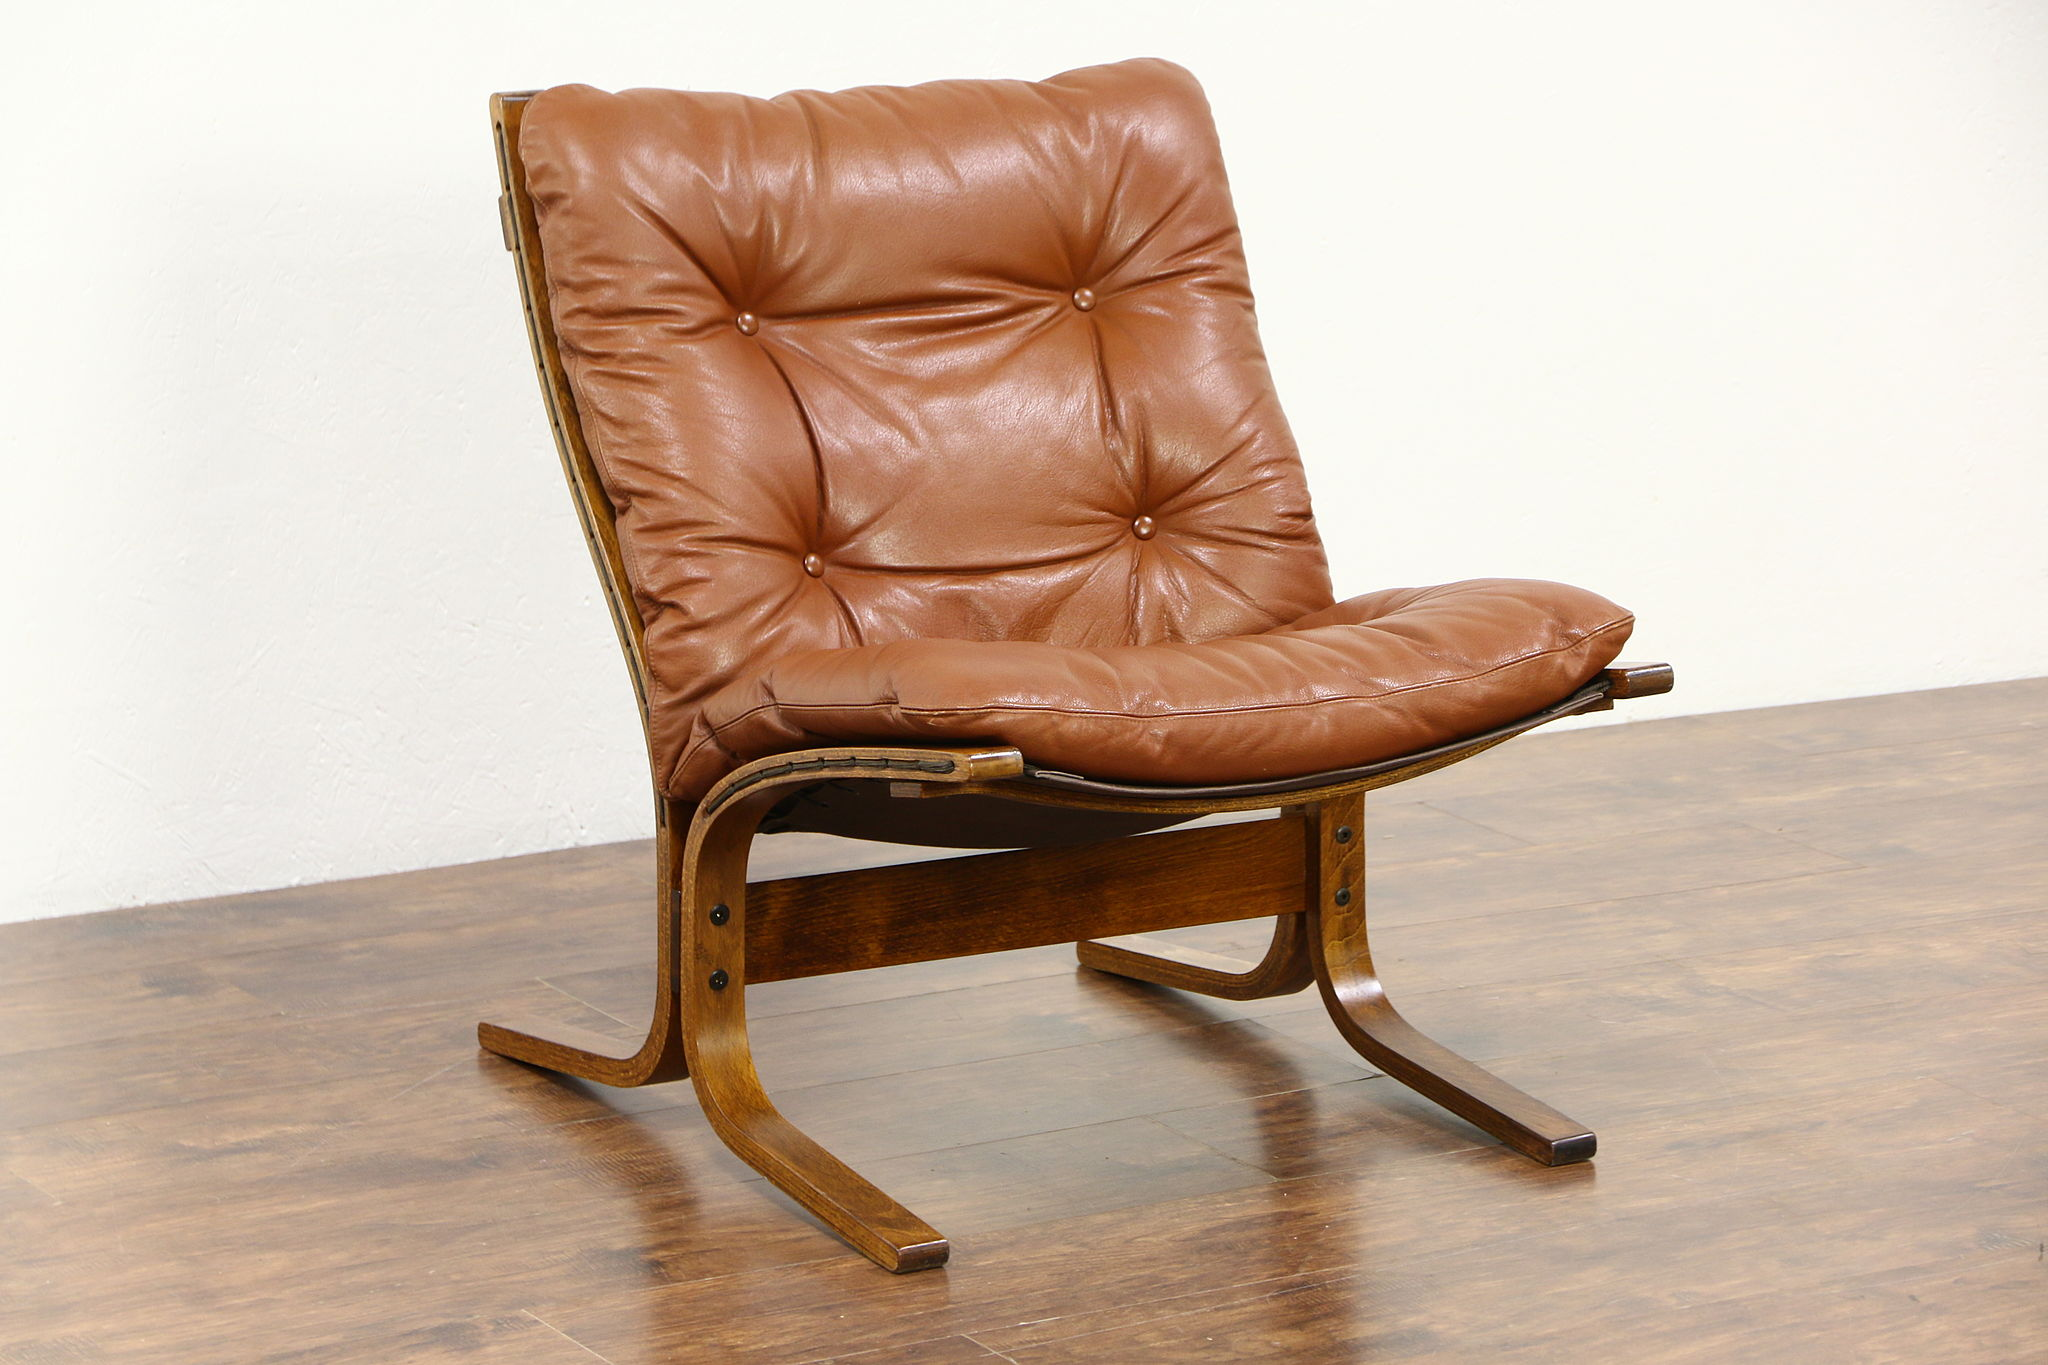 Midcentury modern 1960 vintage tufted leather chair made in norway